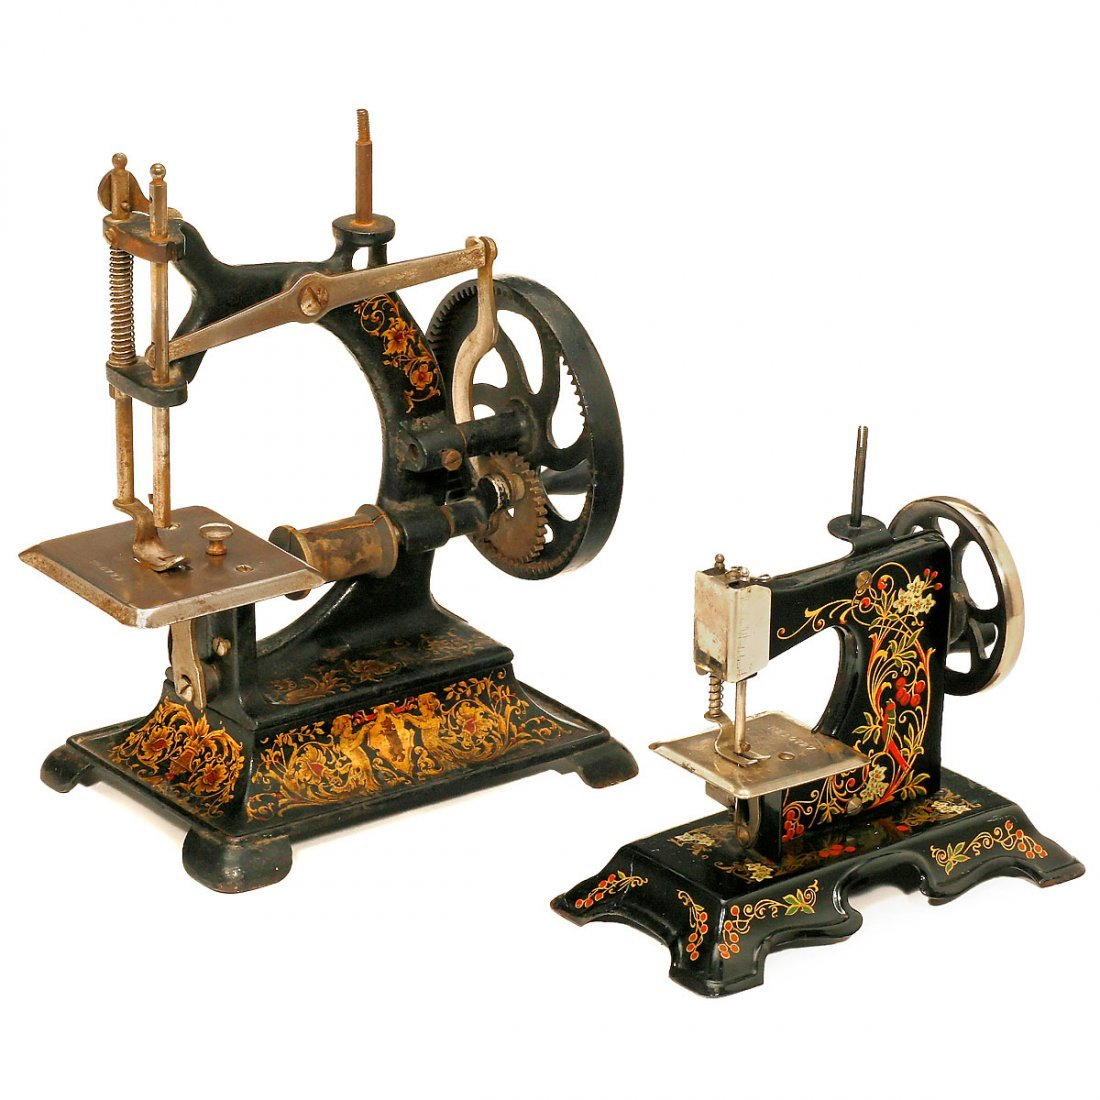 2 Toy Sewing Machines, c. 1920